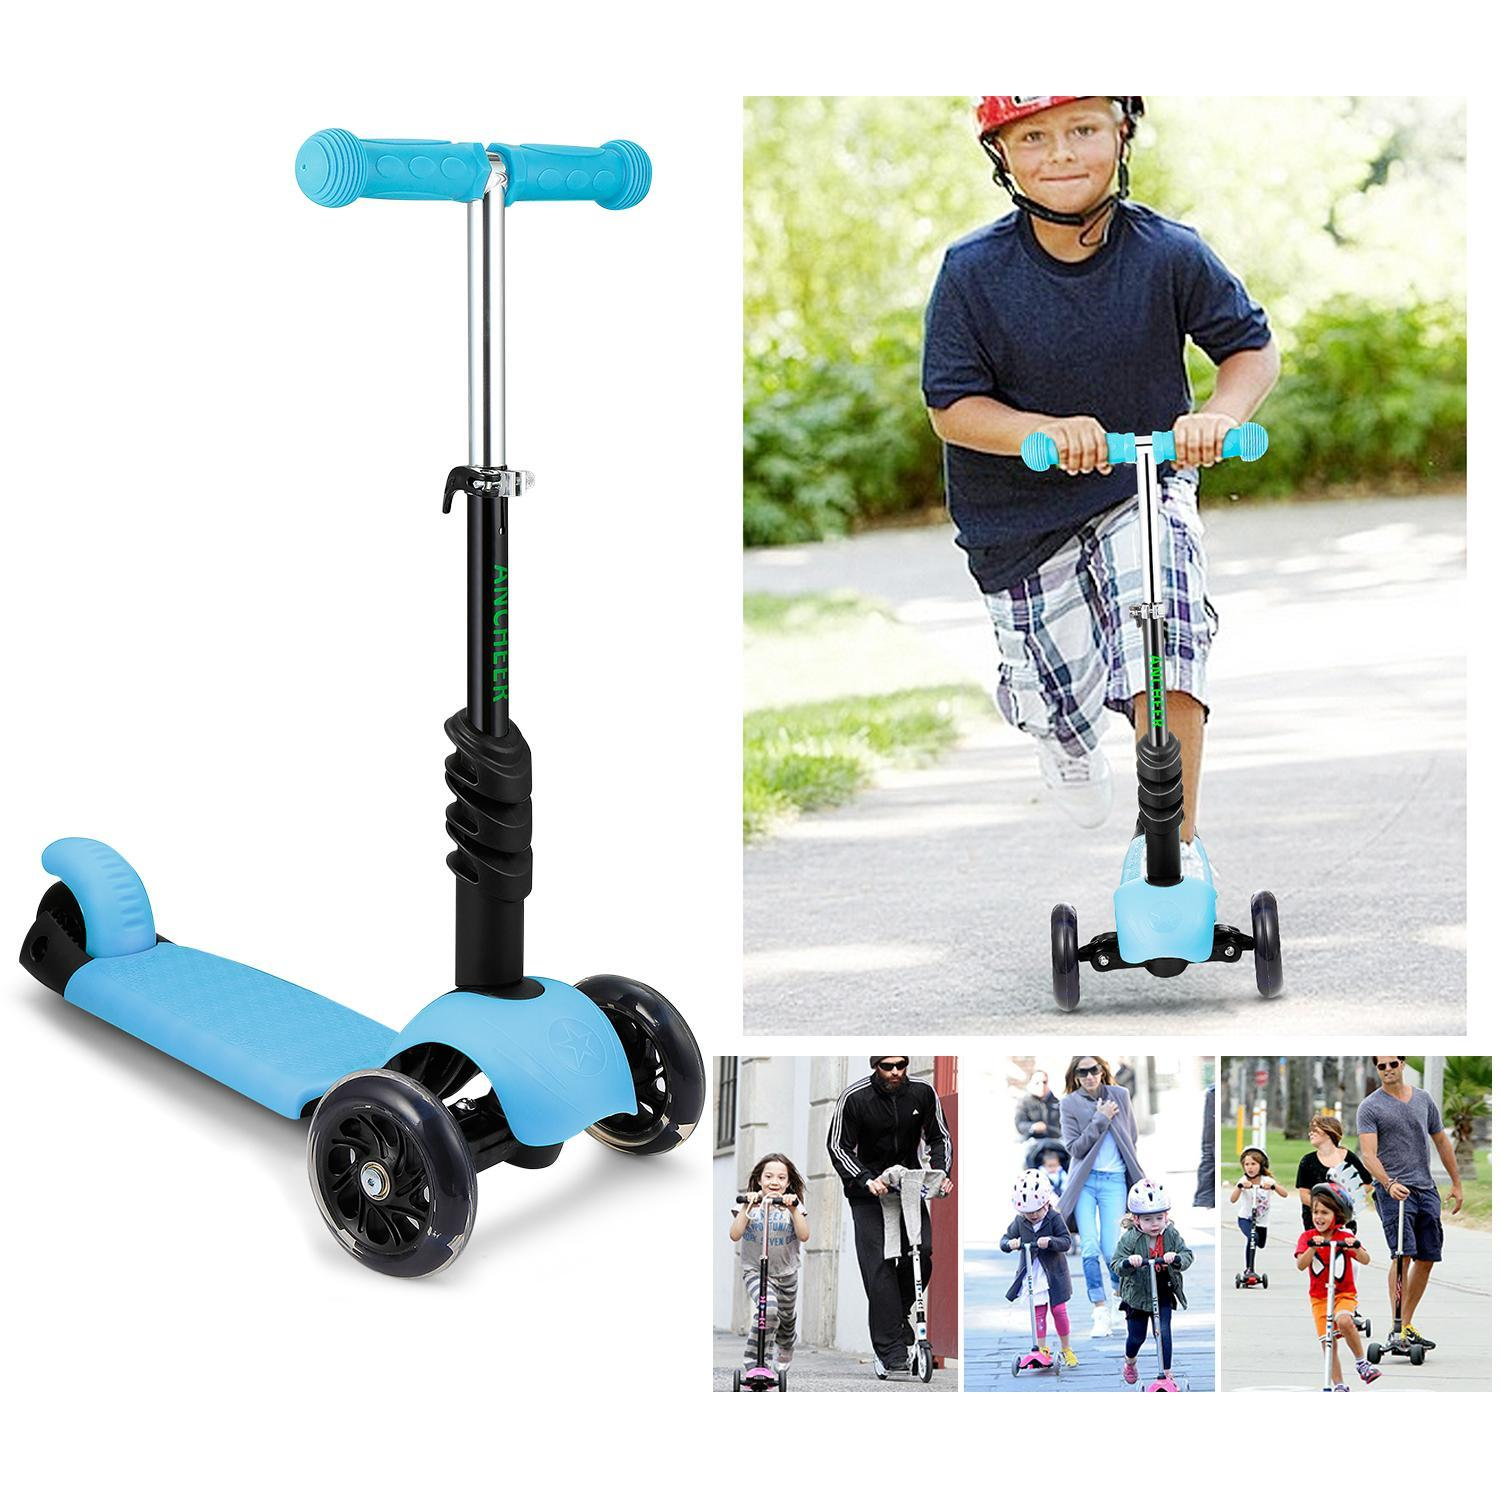 Kids 3 Wheel Scooter with Seat and Flashing Wheels Preschool Scooter ECLNK